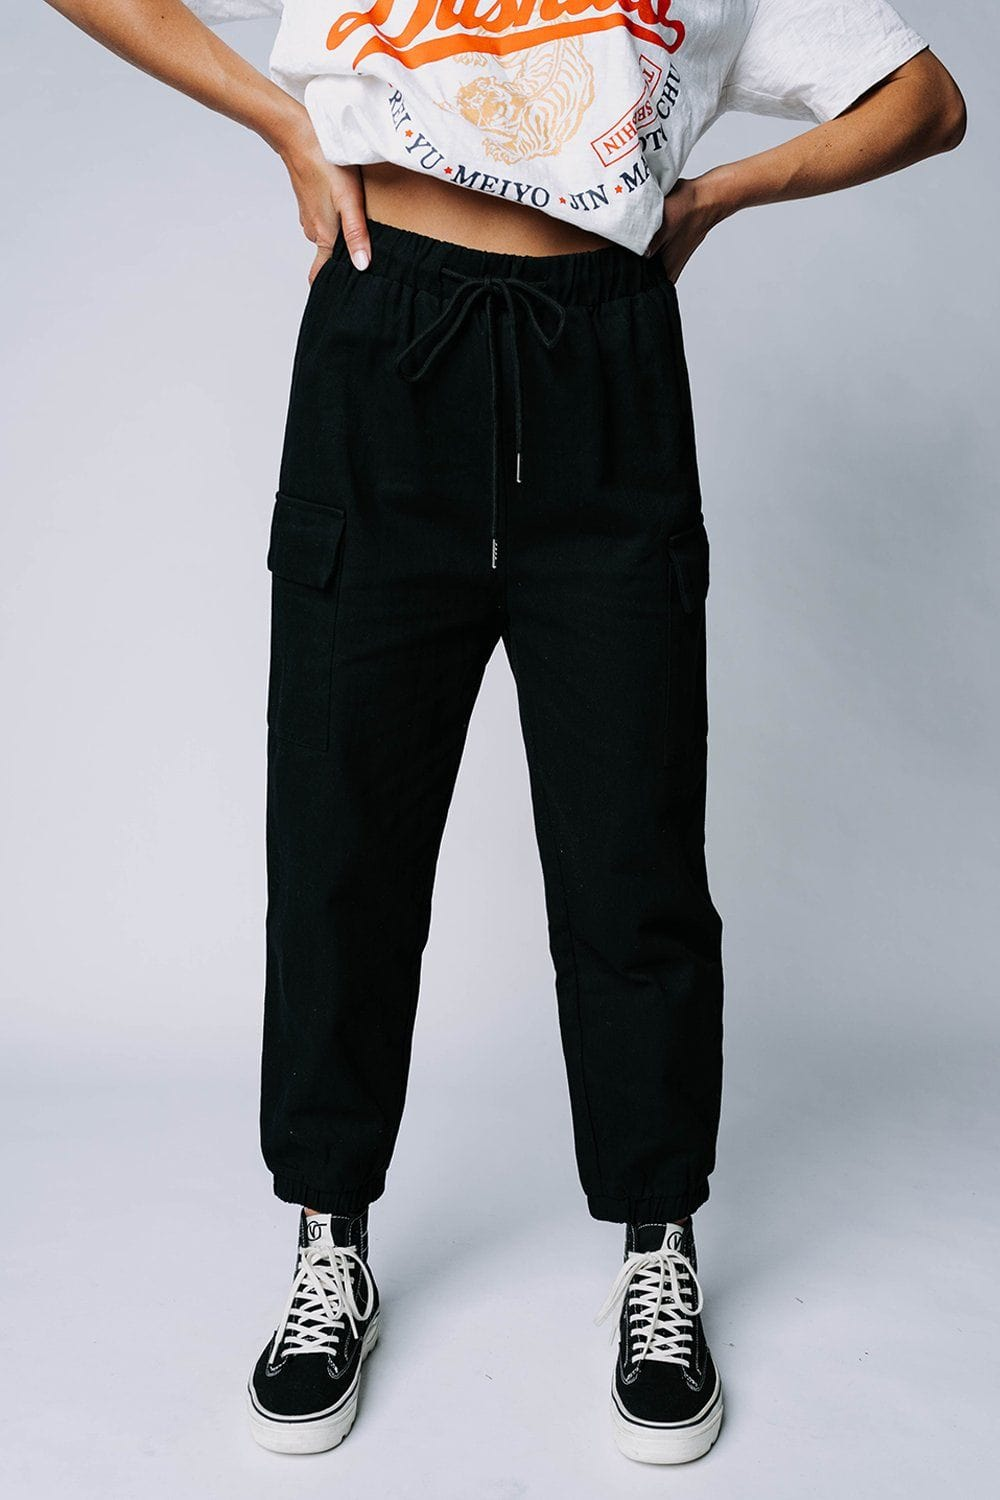 Clad and Cloth, Step Up Jogger Pant in Black, Crescent, Bottom.